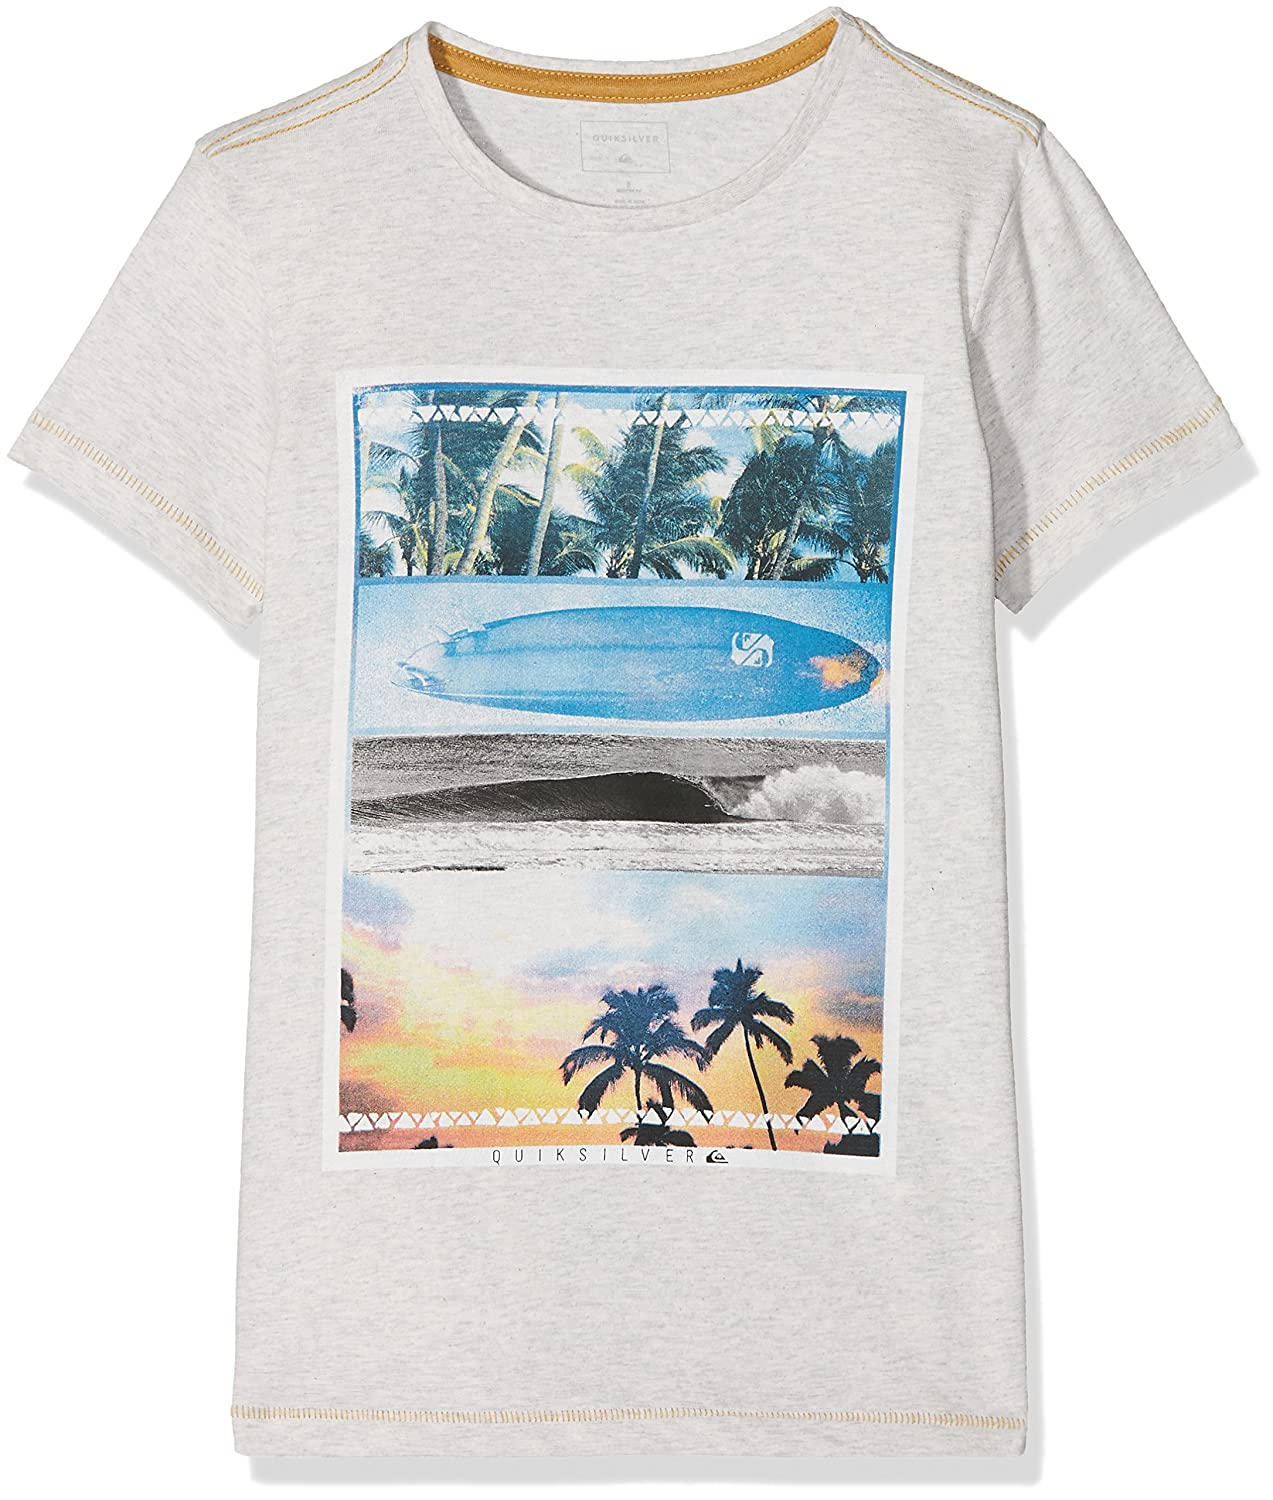 Quiksilver Jungen Placetobeyouth B Wbkh Screen Tee